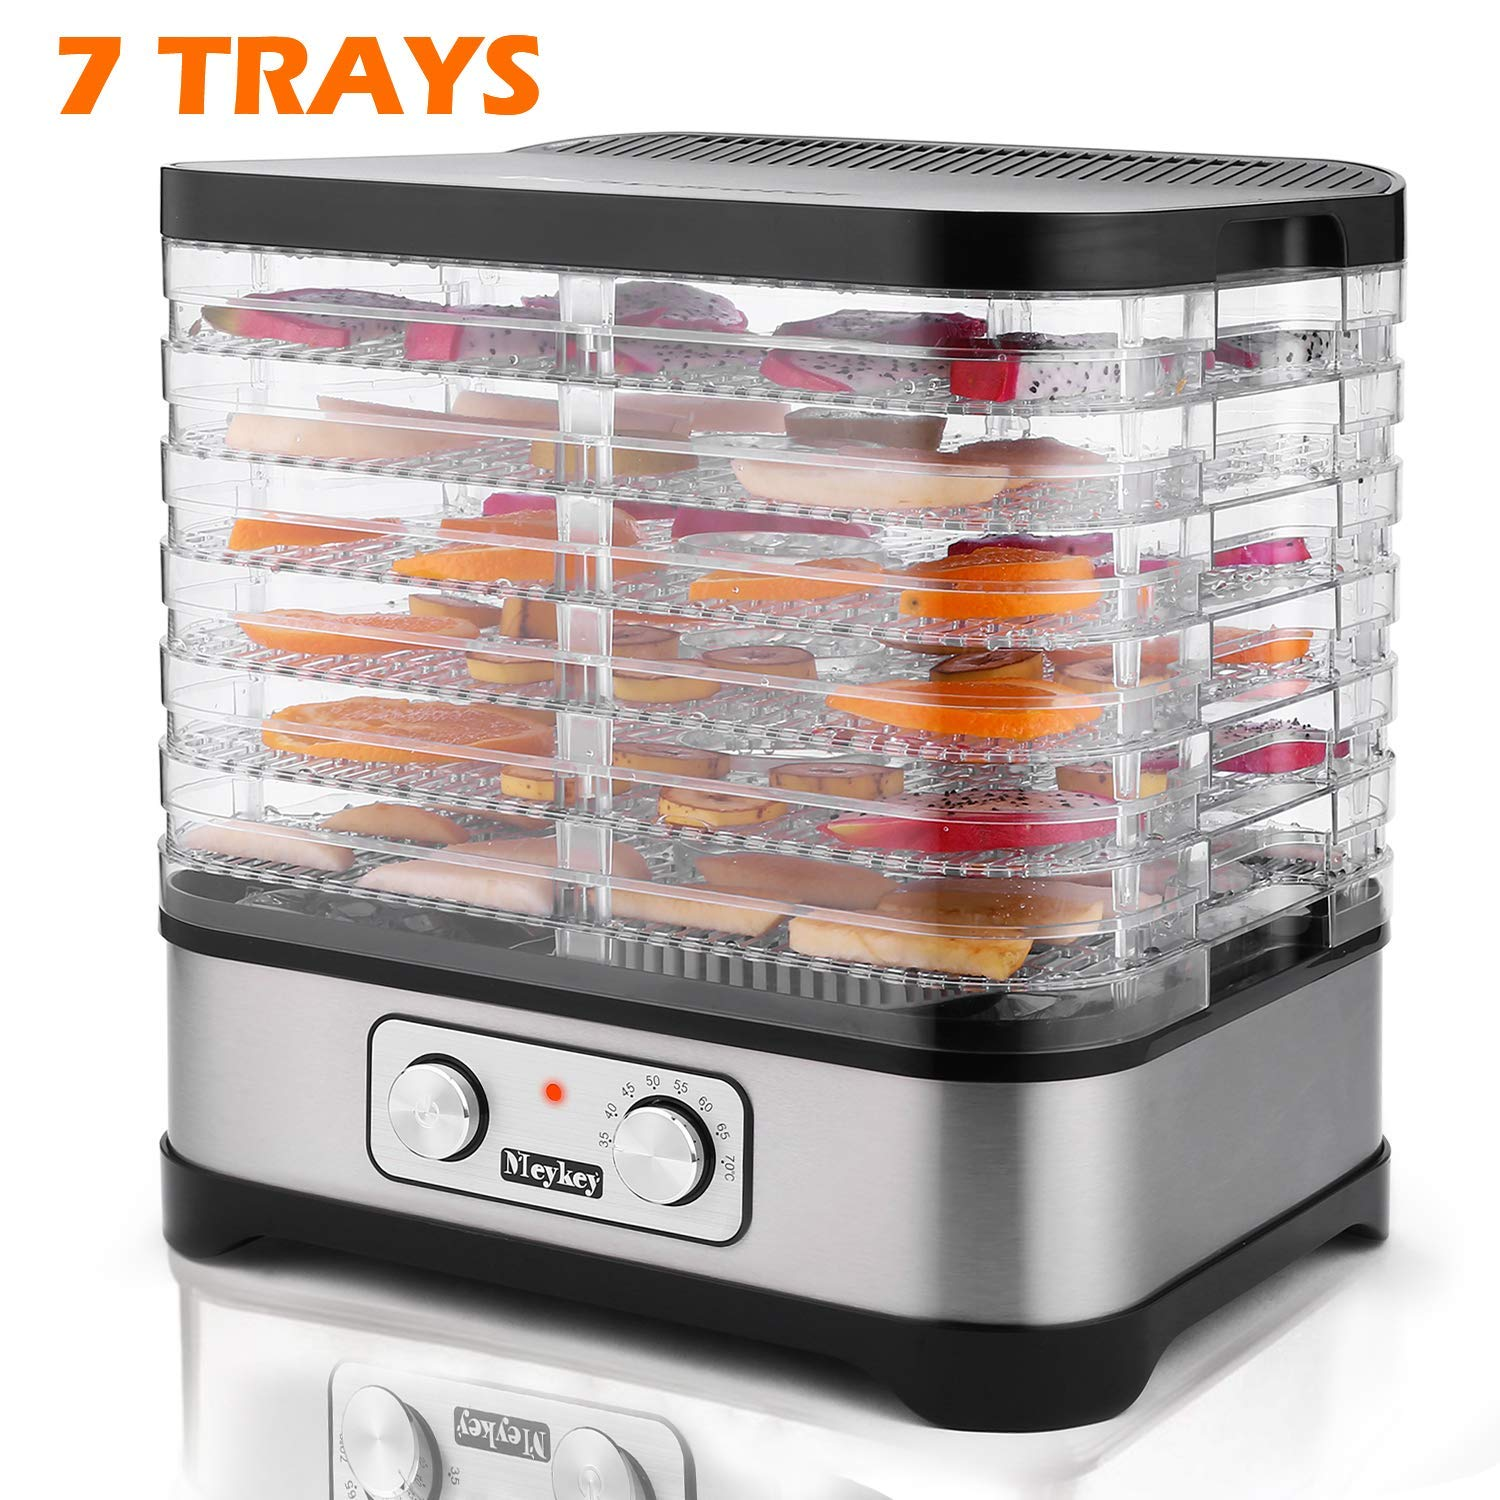 Food Dehydrator Machine, Food Dryer for Jerky/Meat/Beef/Fruit/Vegetable, Temperature Control, 7 Trays